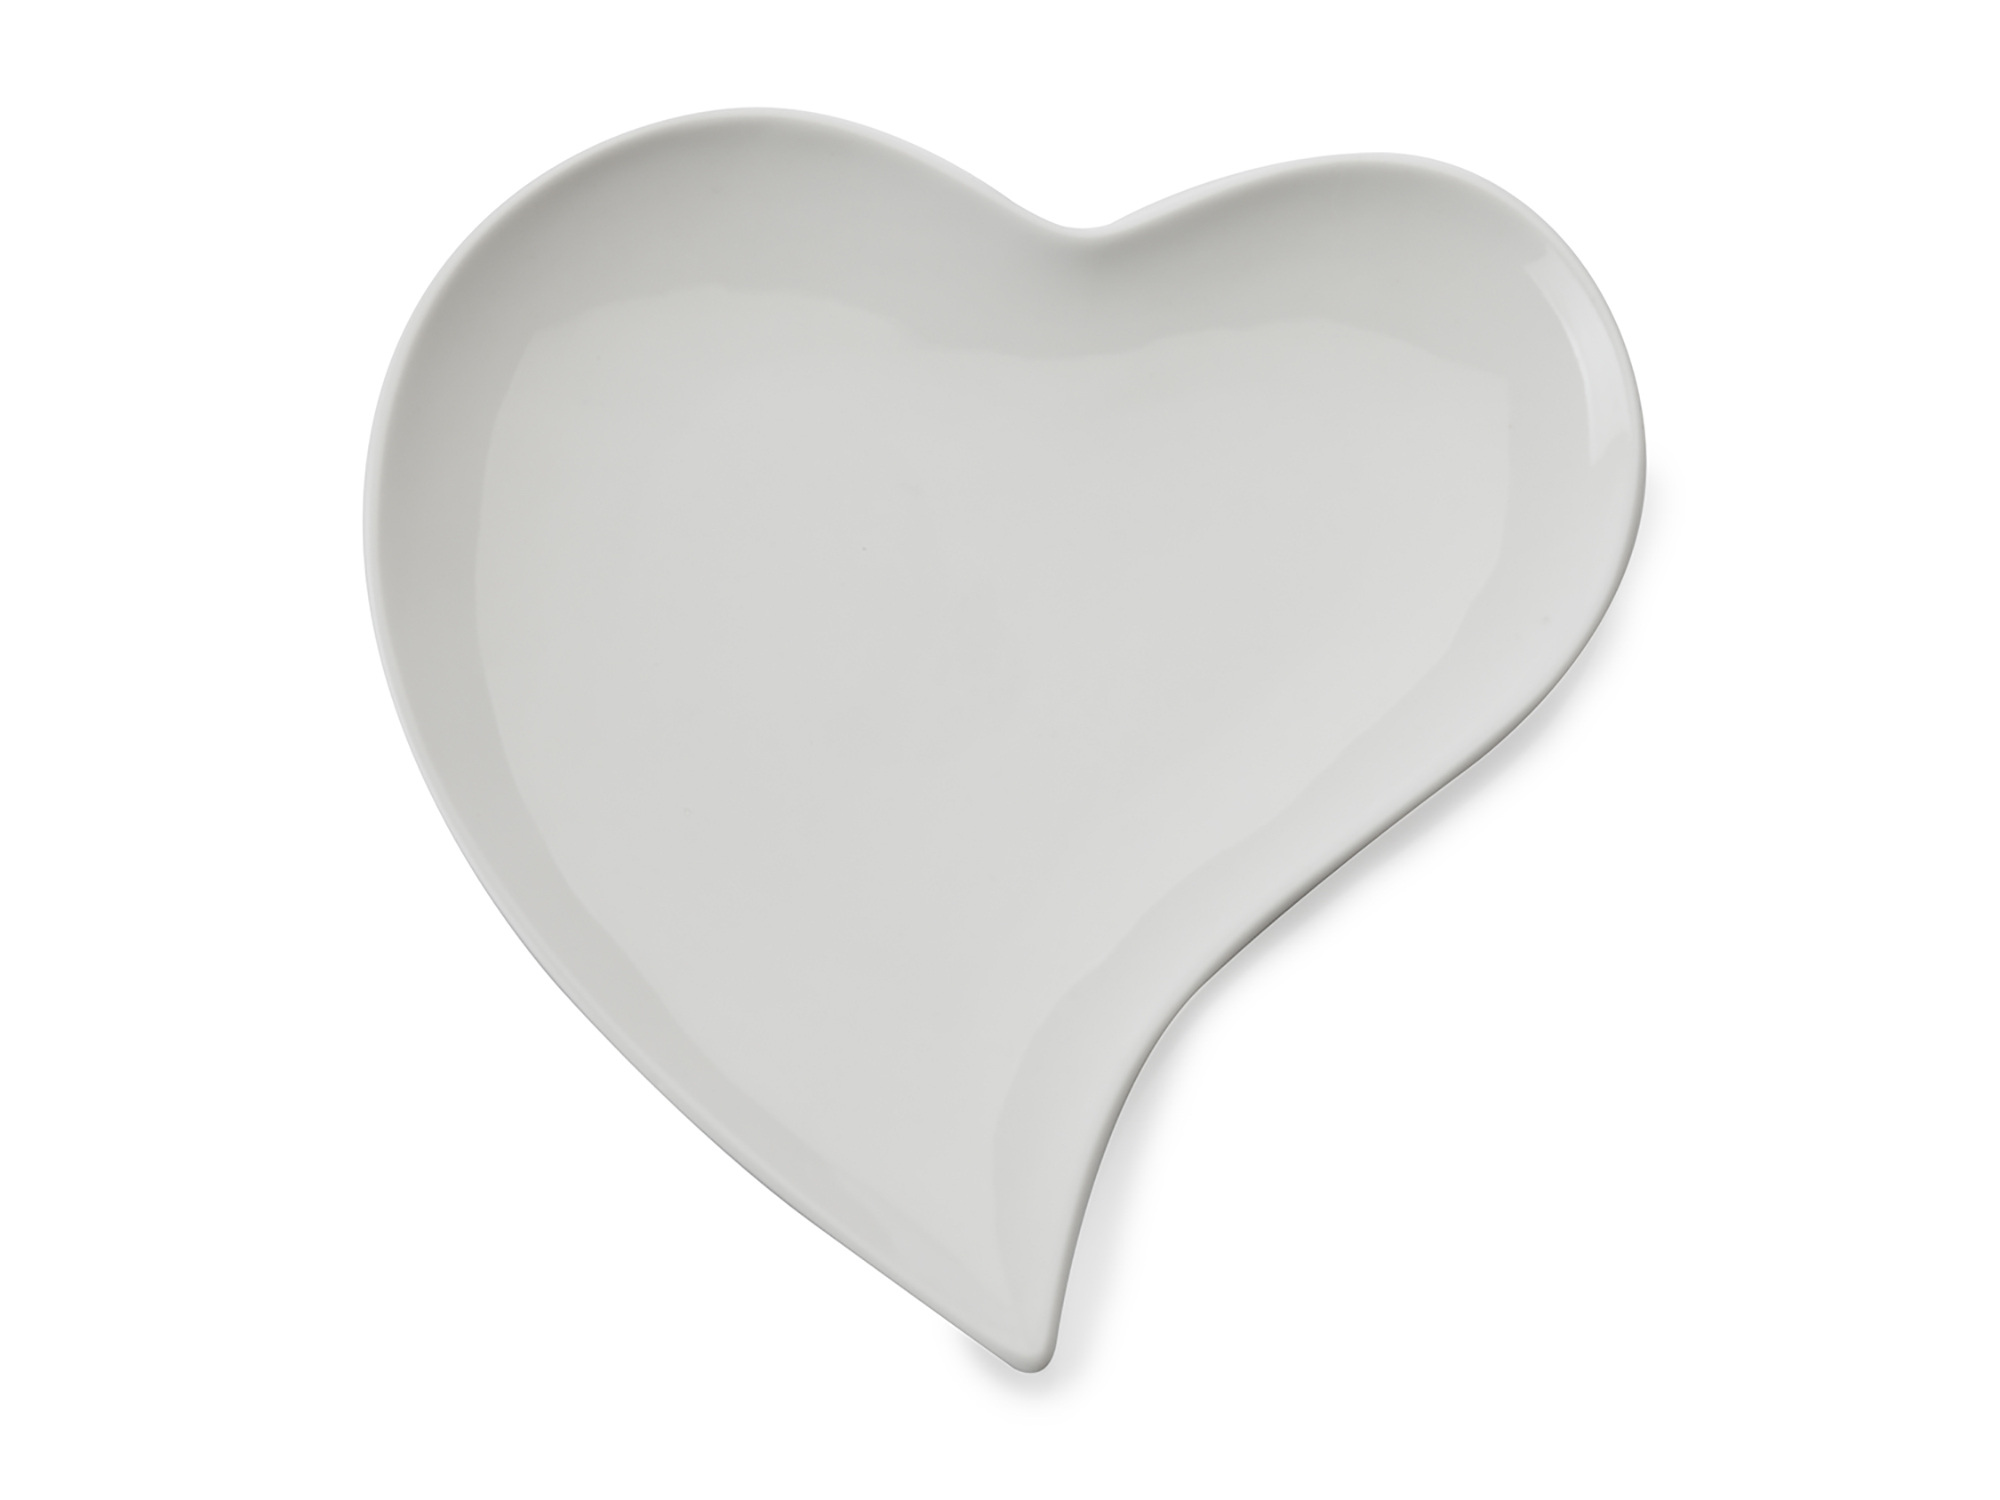 Maxwell & Williams White Basics Heart 21Cm Bowl